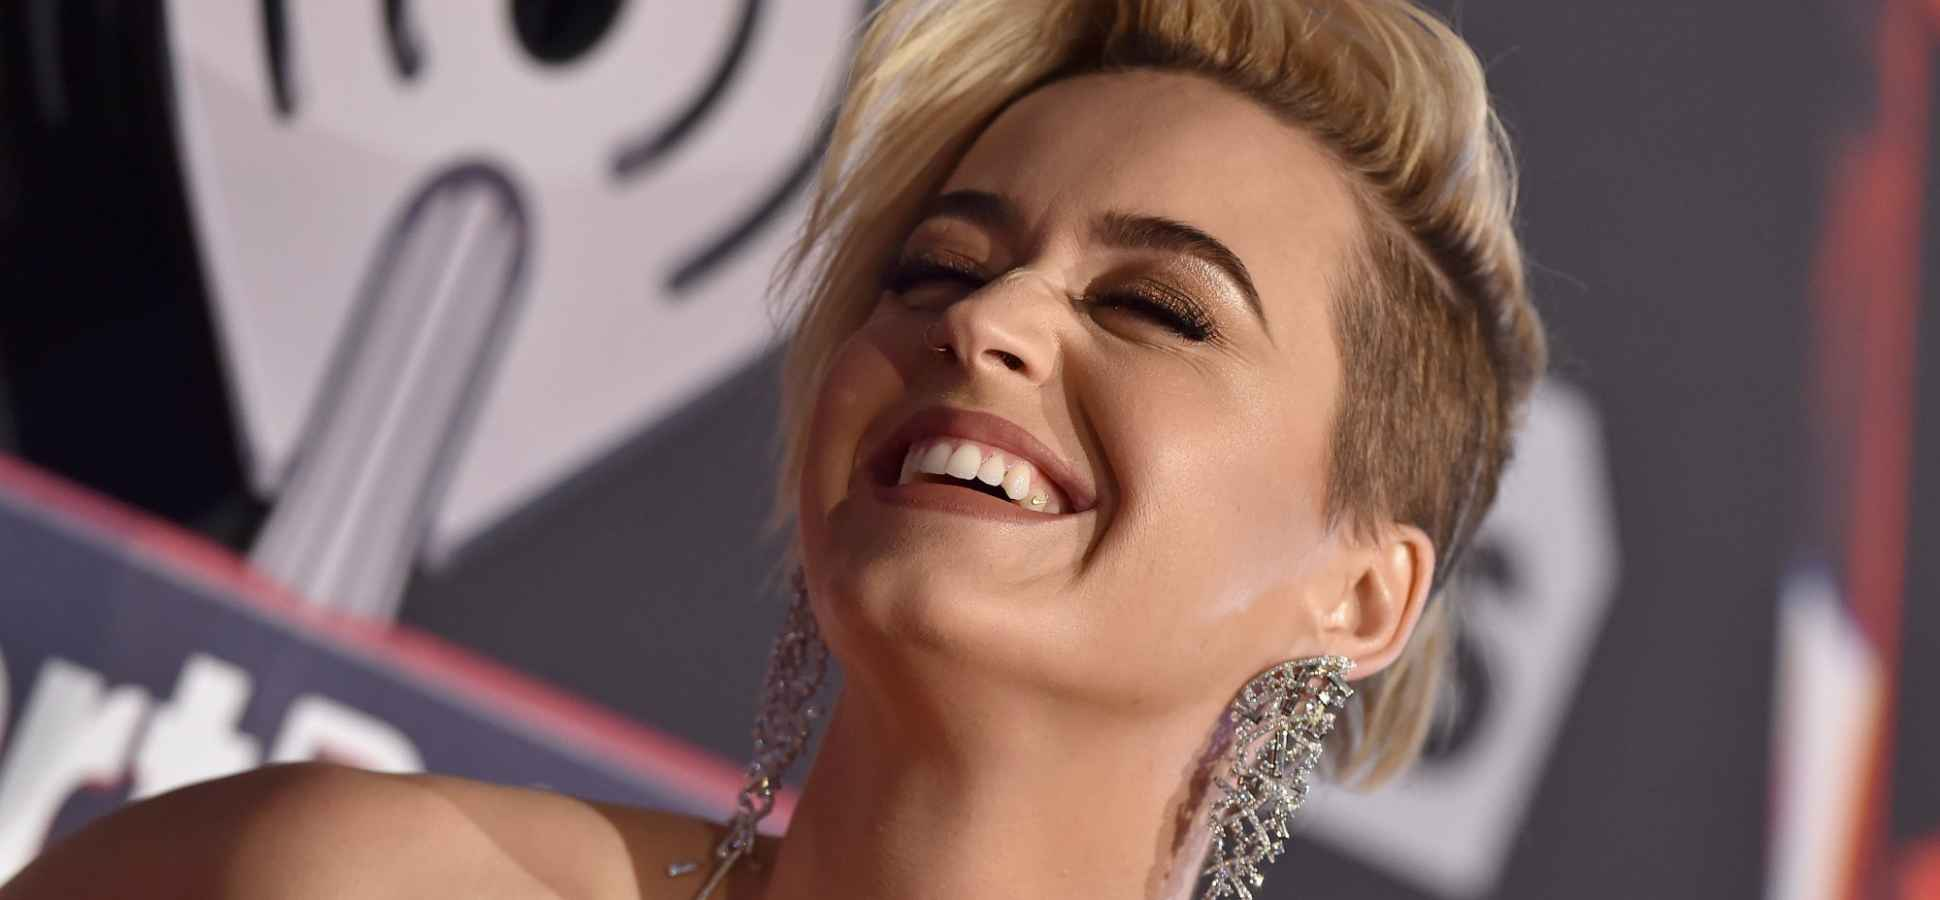 Katy Perry decided to attract voters to the polls with the help of his body 27.09.2016 2